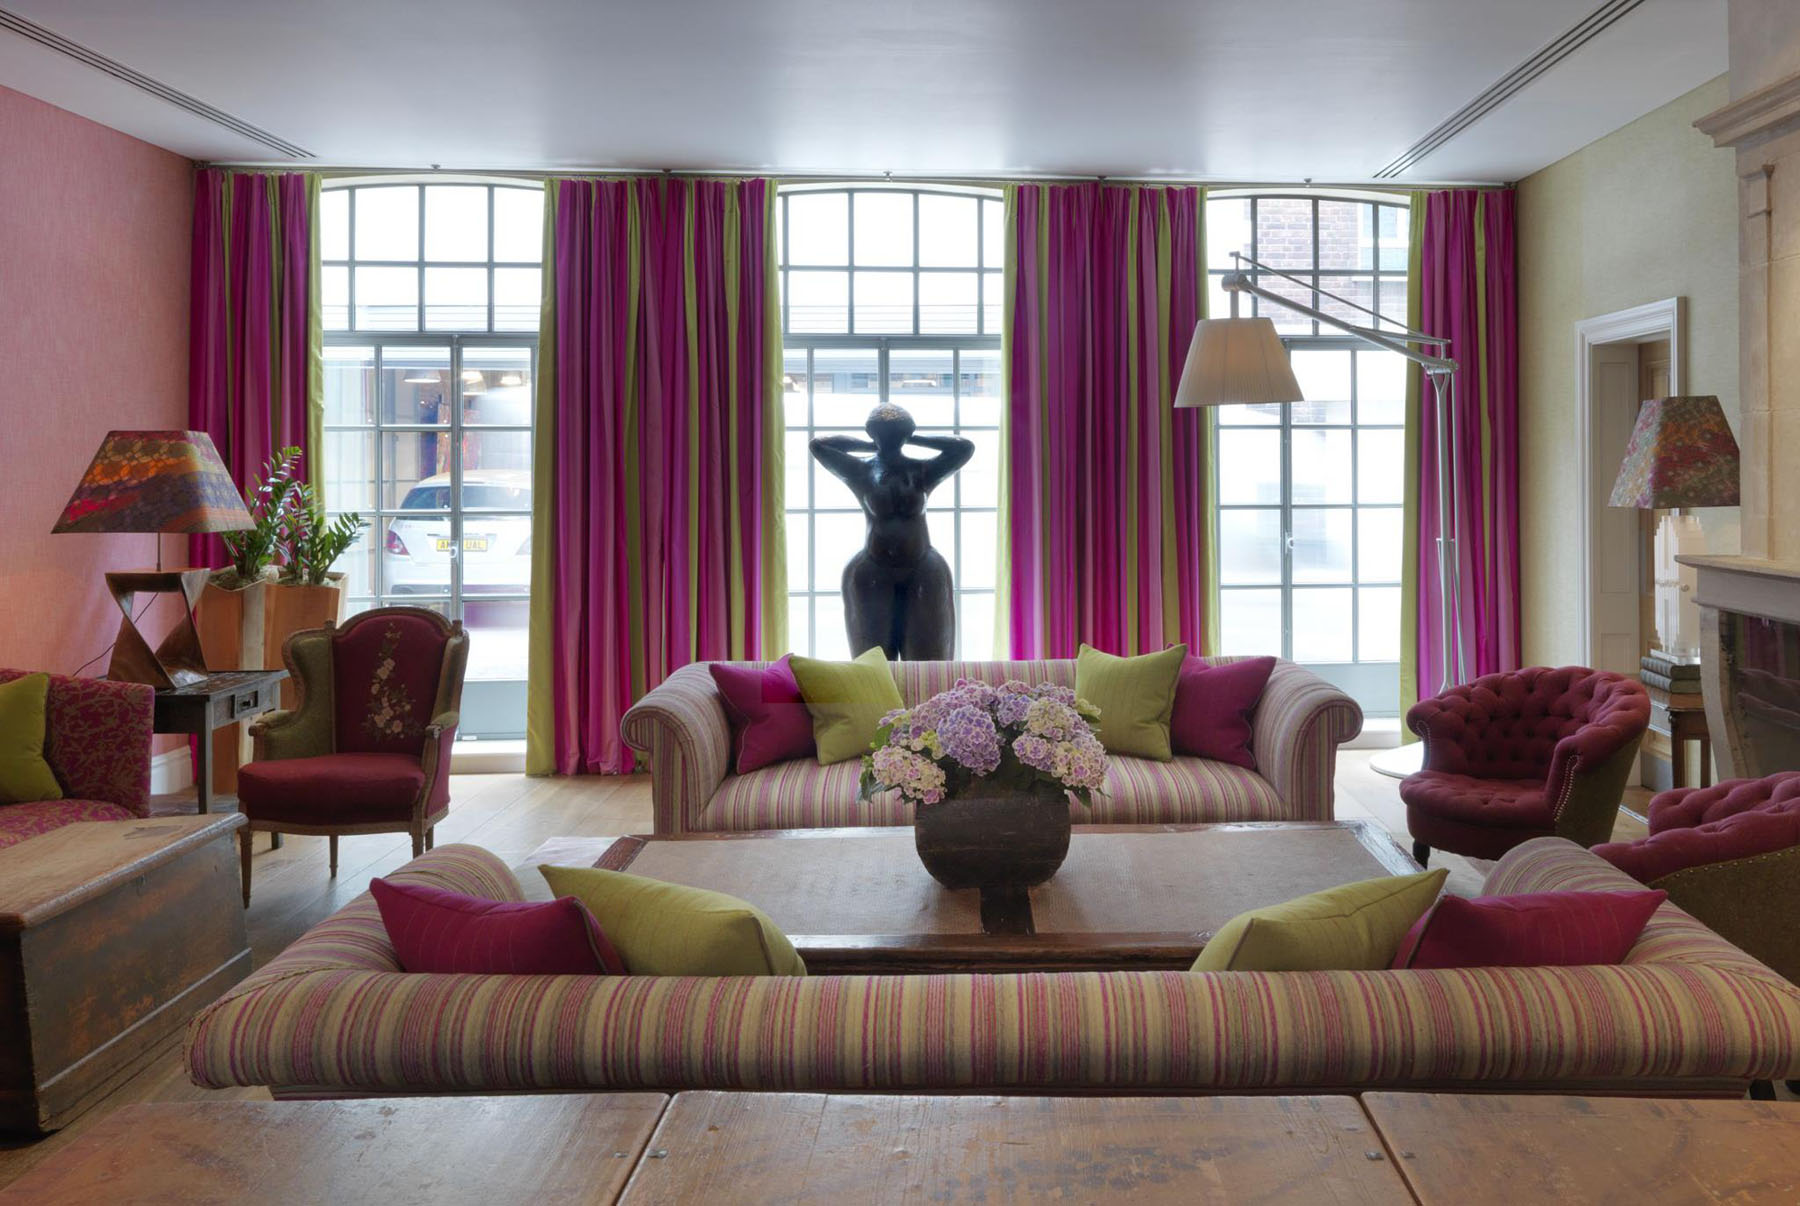 trendy soho hotel london interiors | idesignarch | interior design